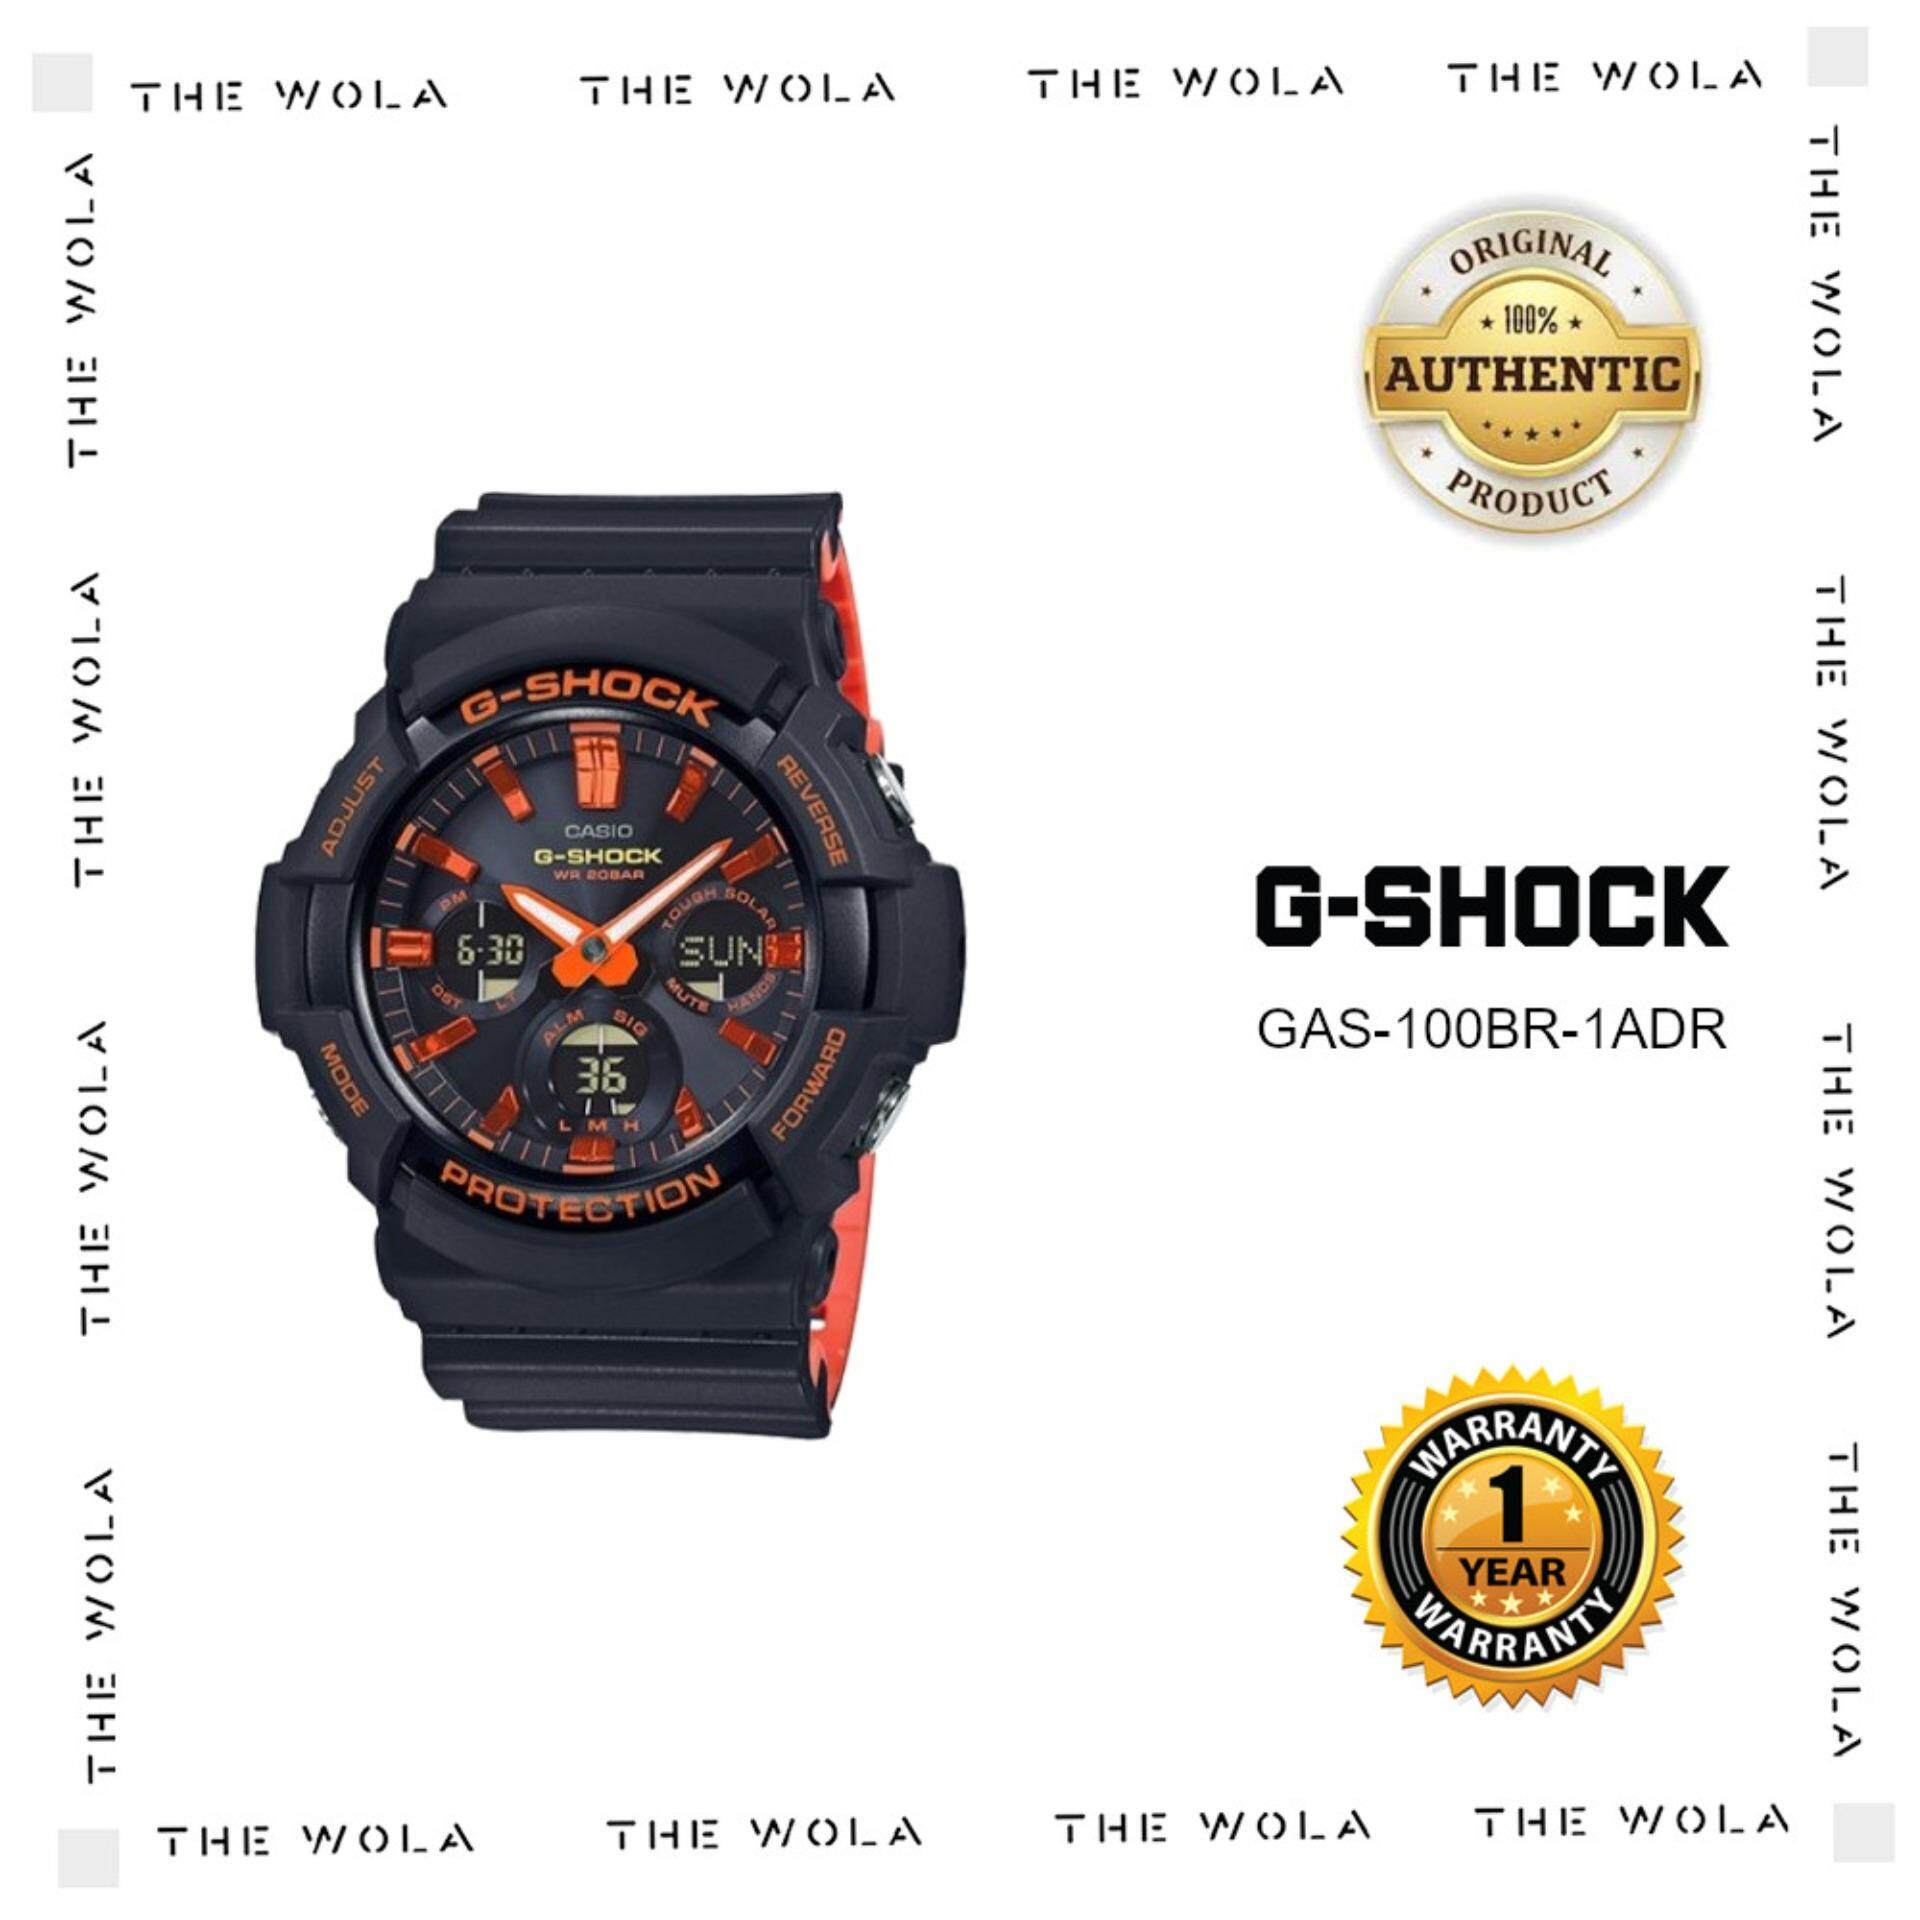 CASIO G-SHOCK SPORT MEN WATCH GAS-100BR-1ADR Original   Genuine ( dd4a68f93a